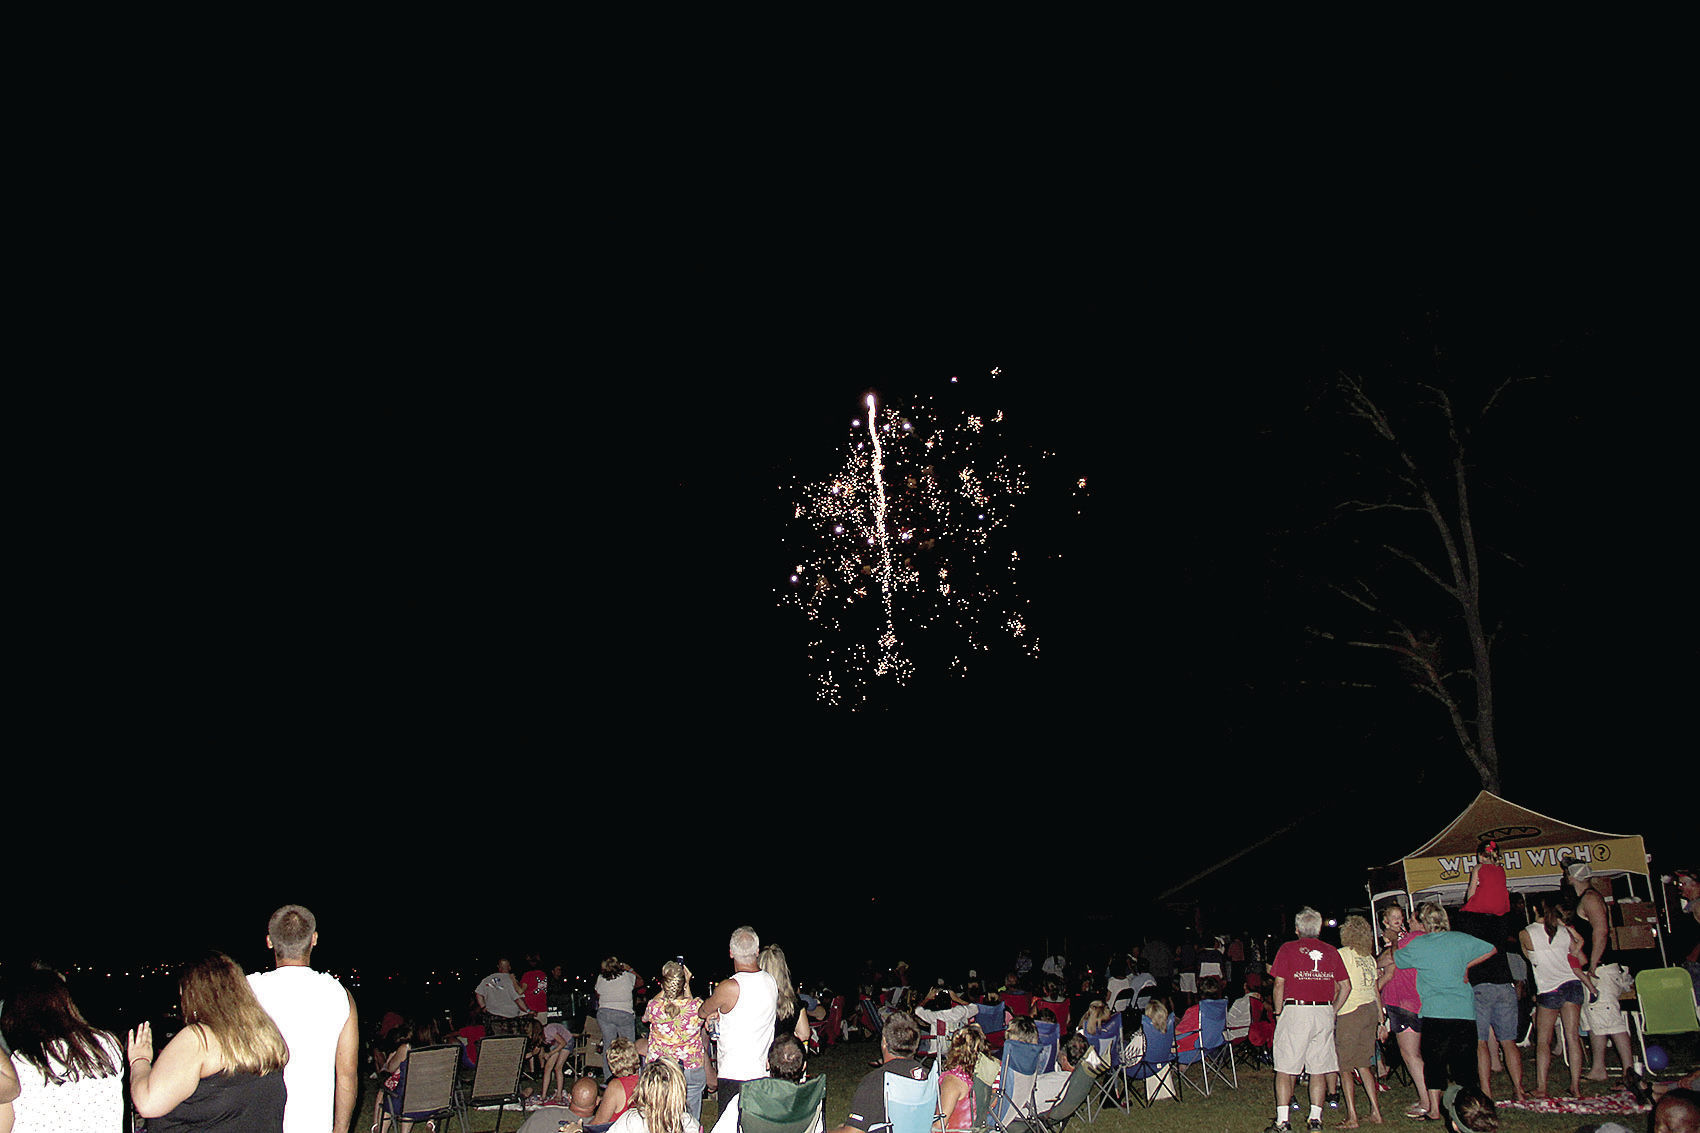 Festivities for your Independence Day Weekend Festivities